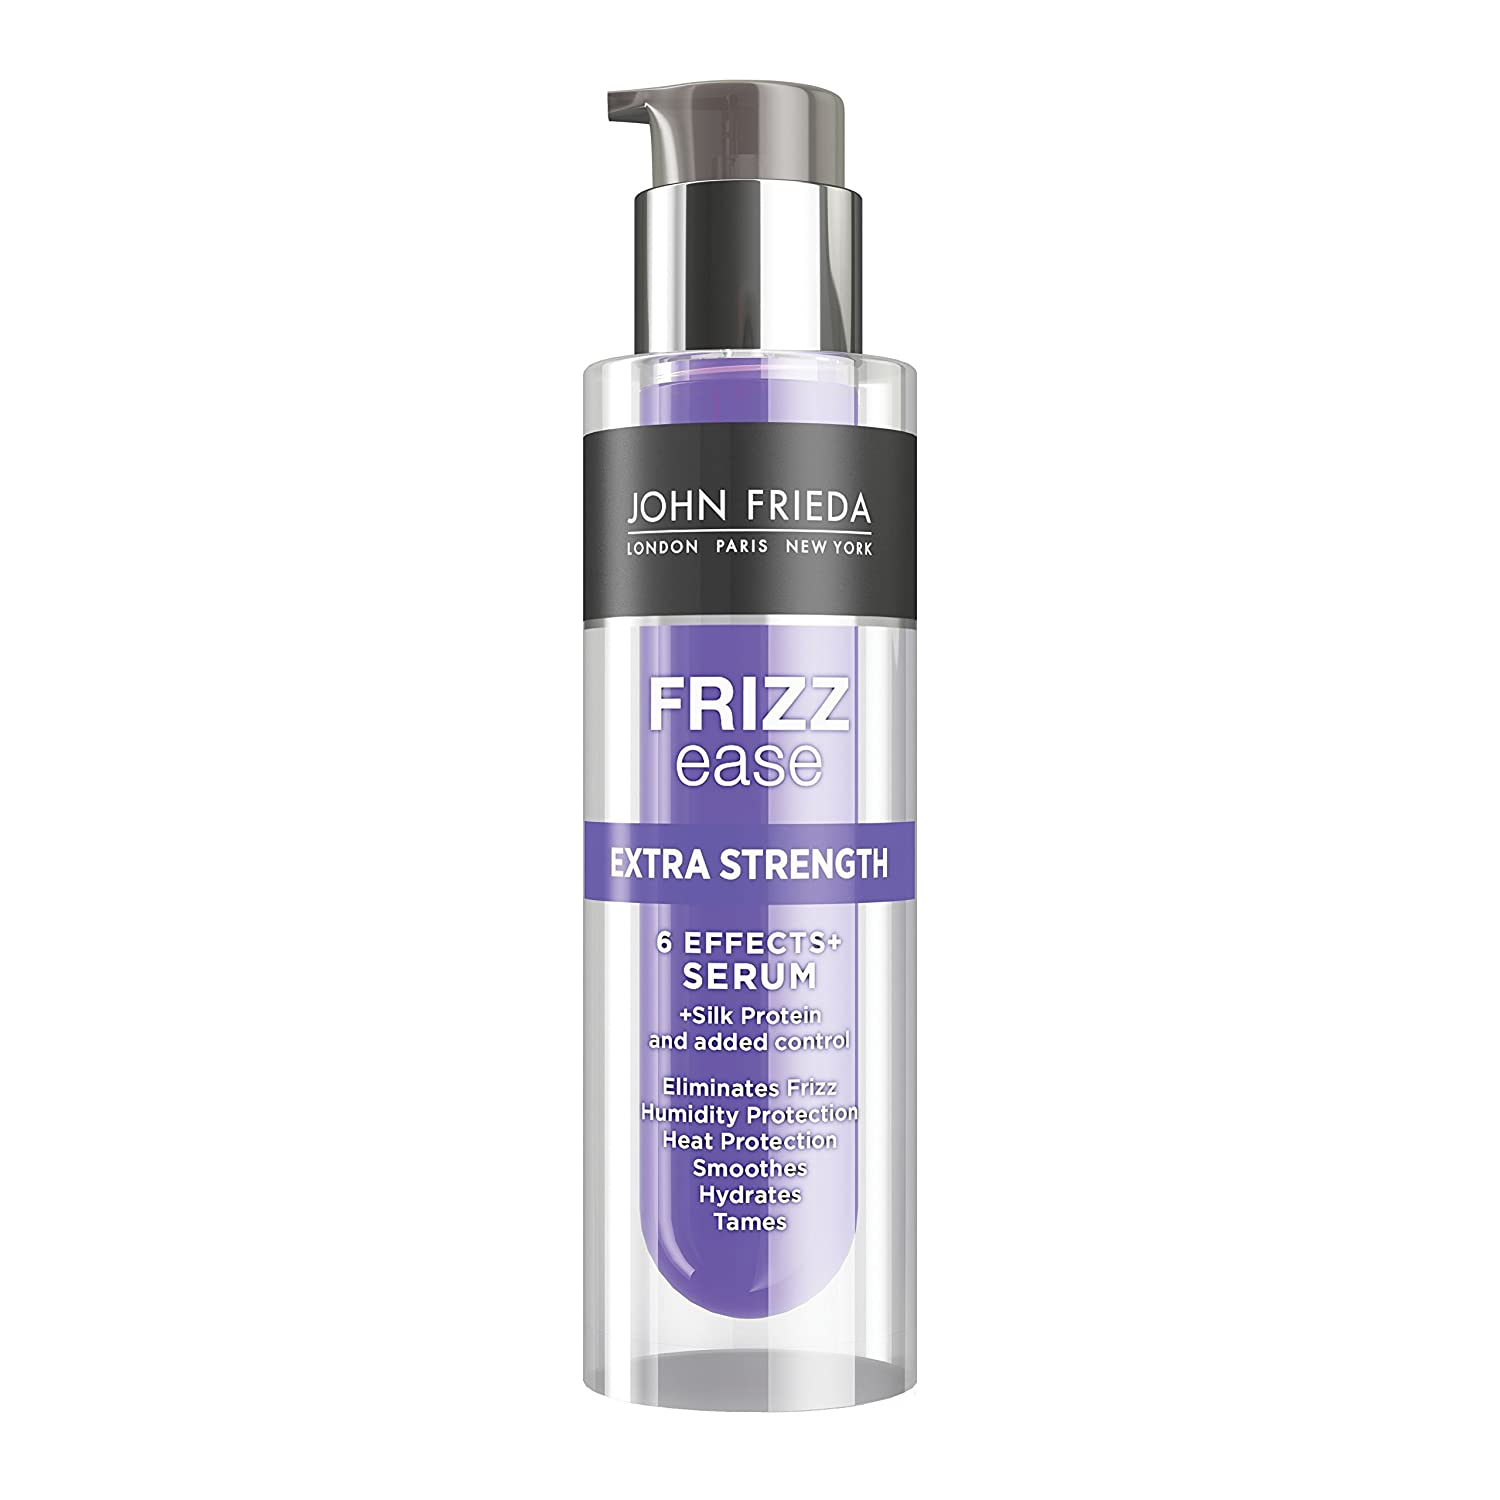 John Frieda Frizz Ease Extra Strength 6 Effects Serum 50 ml GroceryCentre 2020000